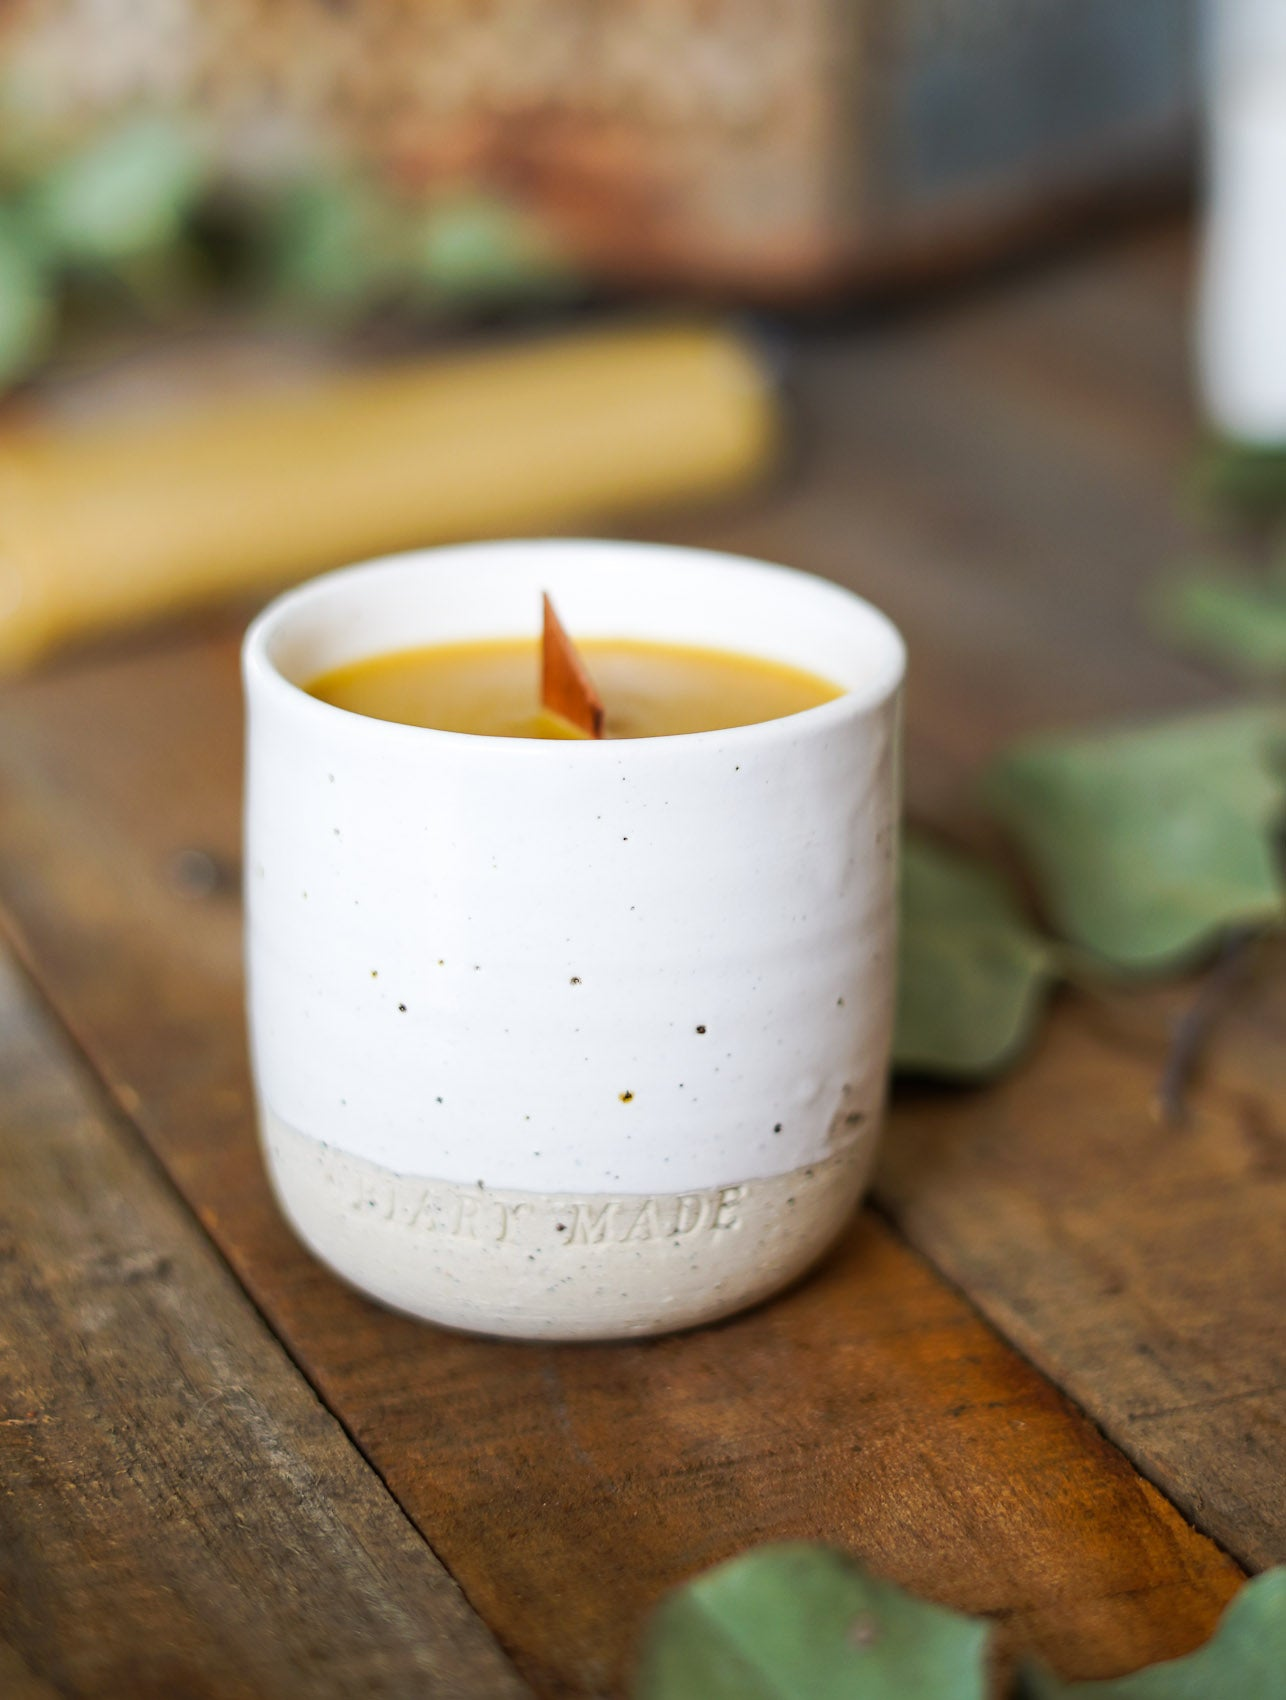 Apiary Made Pure Beeswax and Handmade Ceramic Vessel Candle -Candles